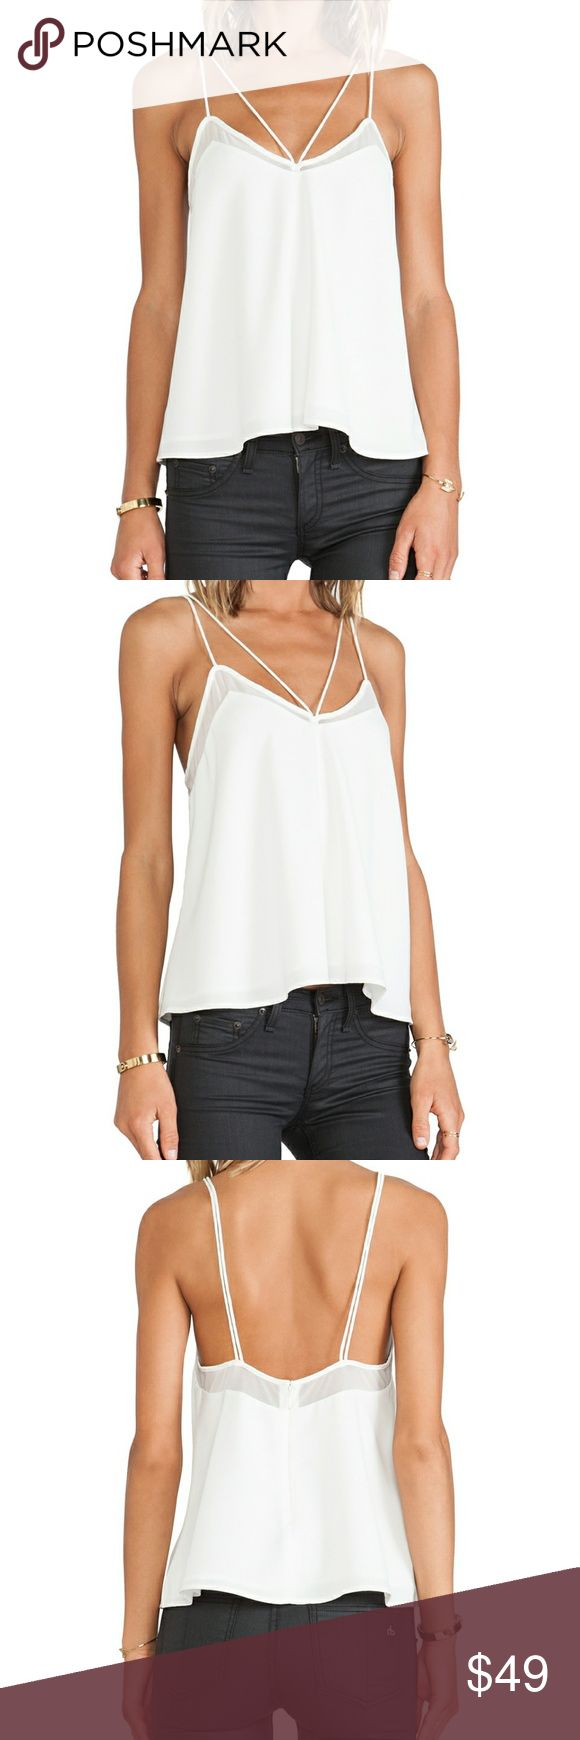 FINDERS KEEPERS At It Again Top in White FINDERS KEEPERS At It Again Top in White. BNWOT. Size XS. Slinky top with super thin srrappy detailing and sheer mesh contrast panels along the bust. Flared silhouette. Hidden center back zipper closure. #revolve #reformation #missguided #allsaints #alice + olivia #Flynn Skye #one teaspoon #lf #lovers + friends Finders Keepers Tops Tank Tops